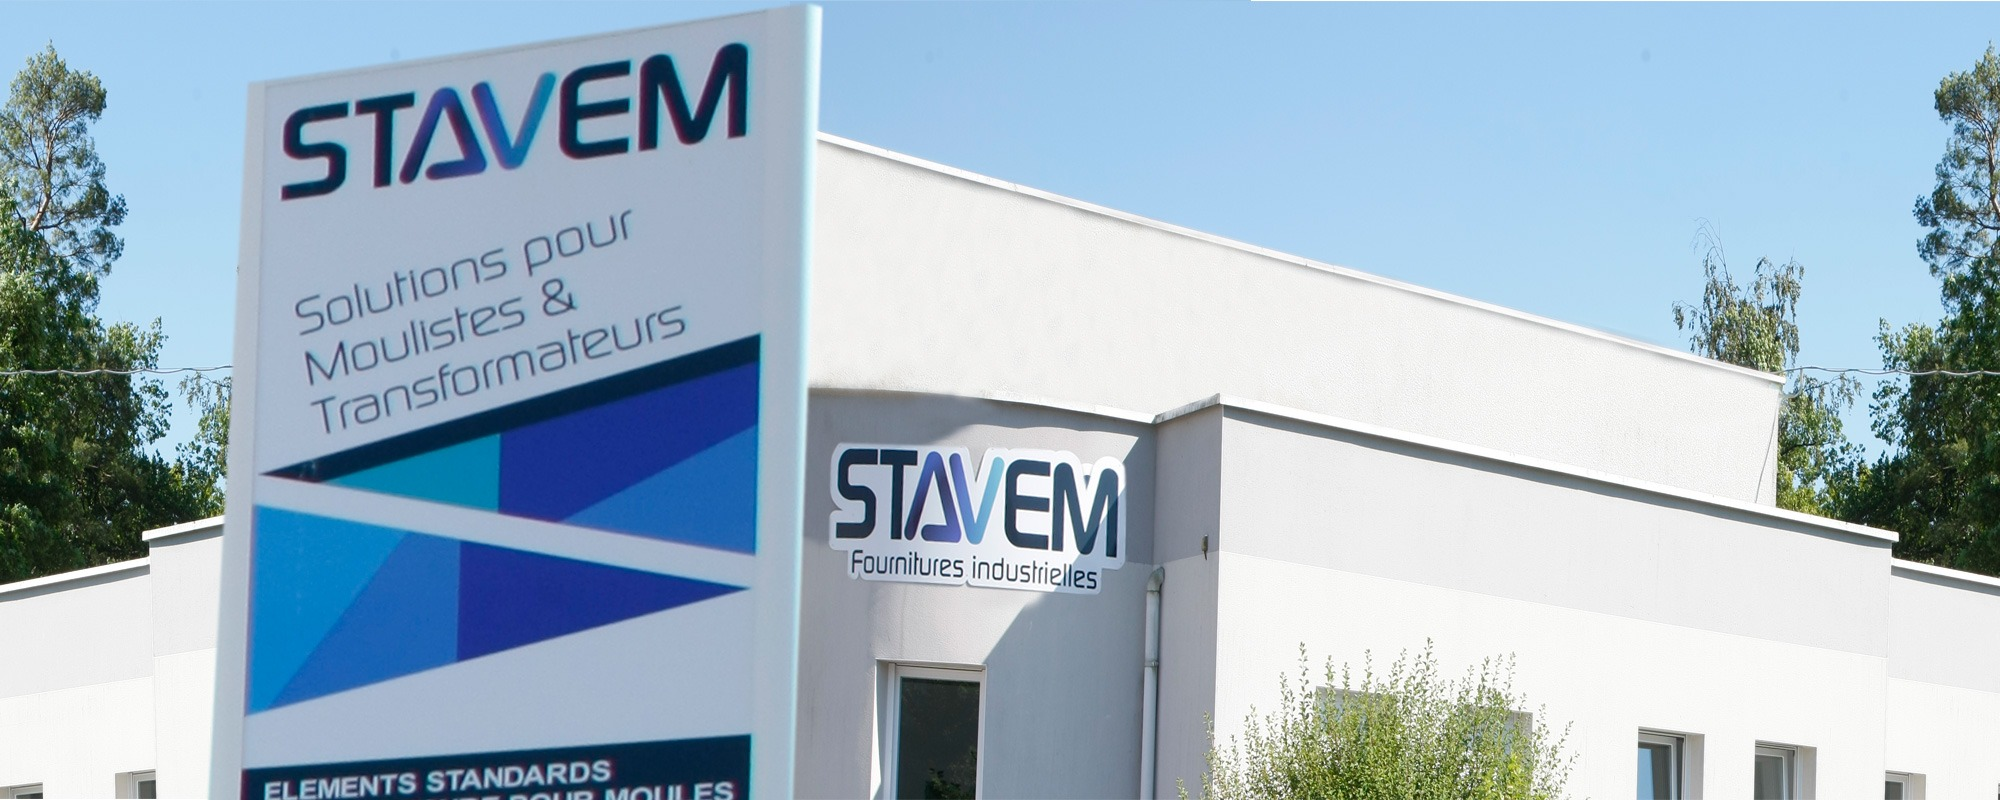 Stavem is a French company specialized for more than 20 years in the consulting and supply of elements for metal molds and tools, for mold makers and processors.